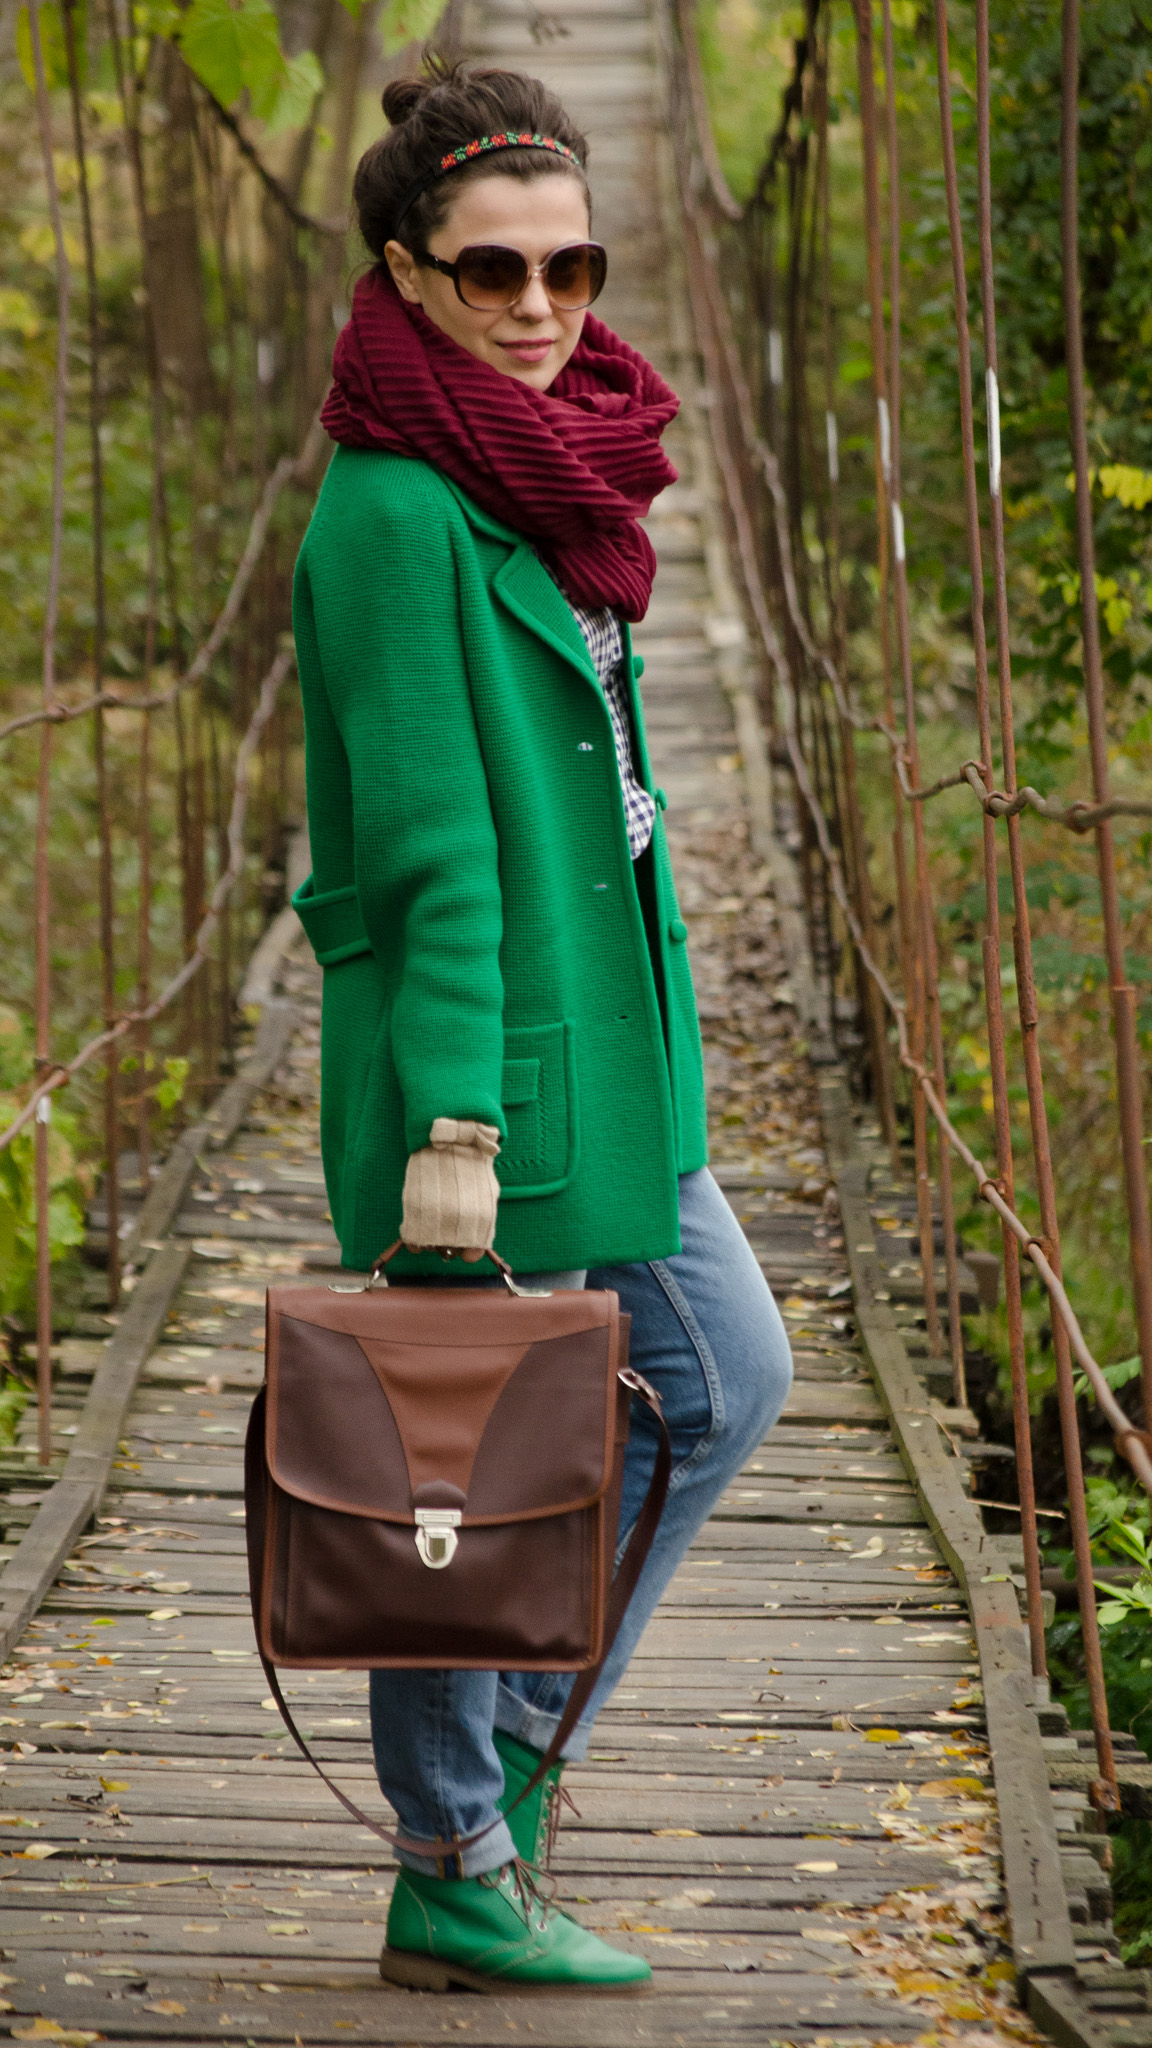 over-sized green sweater fall outfit mom jeans h&m green boots brown satchel bag thrifted blue shirt bow tie burgundy scarf school gloves